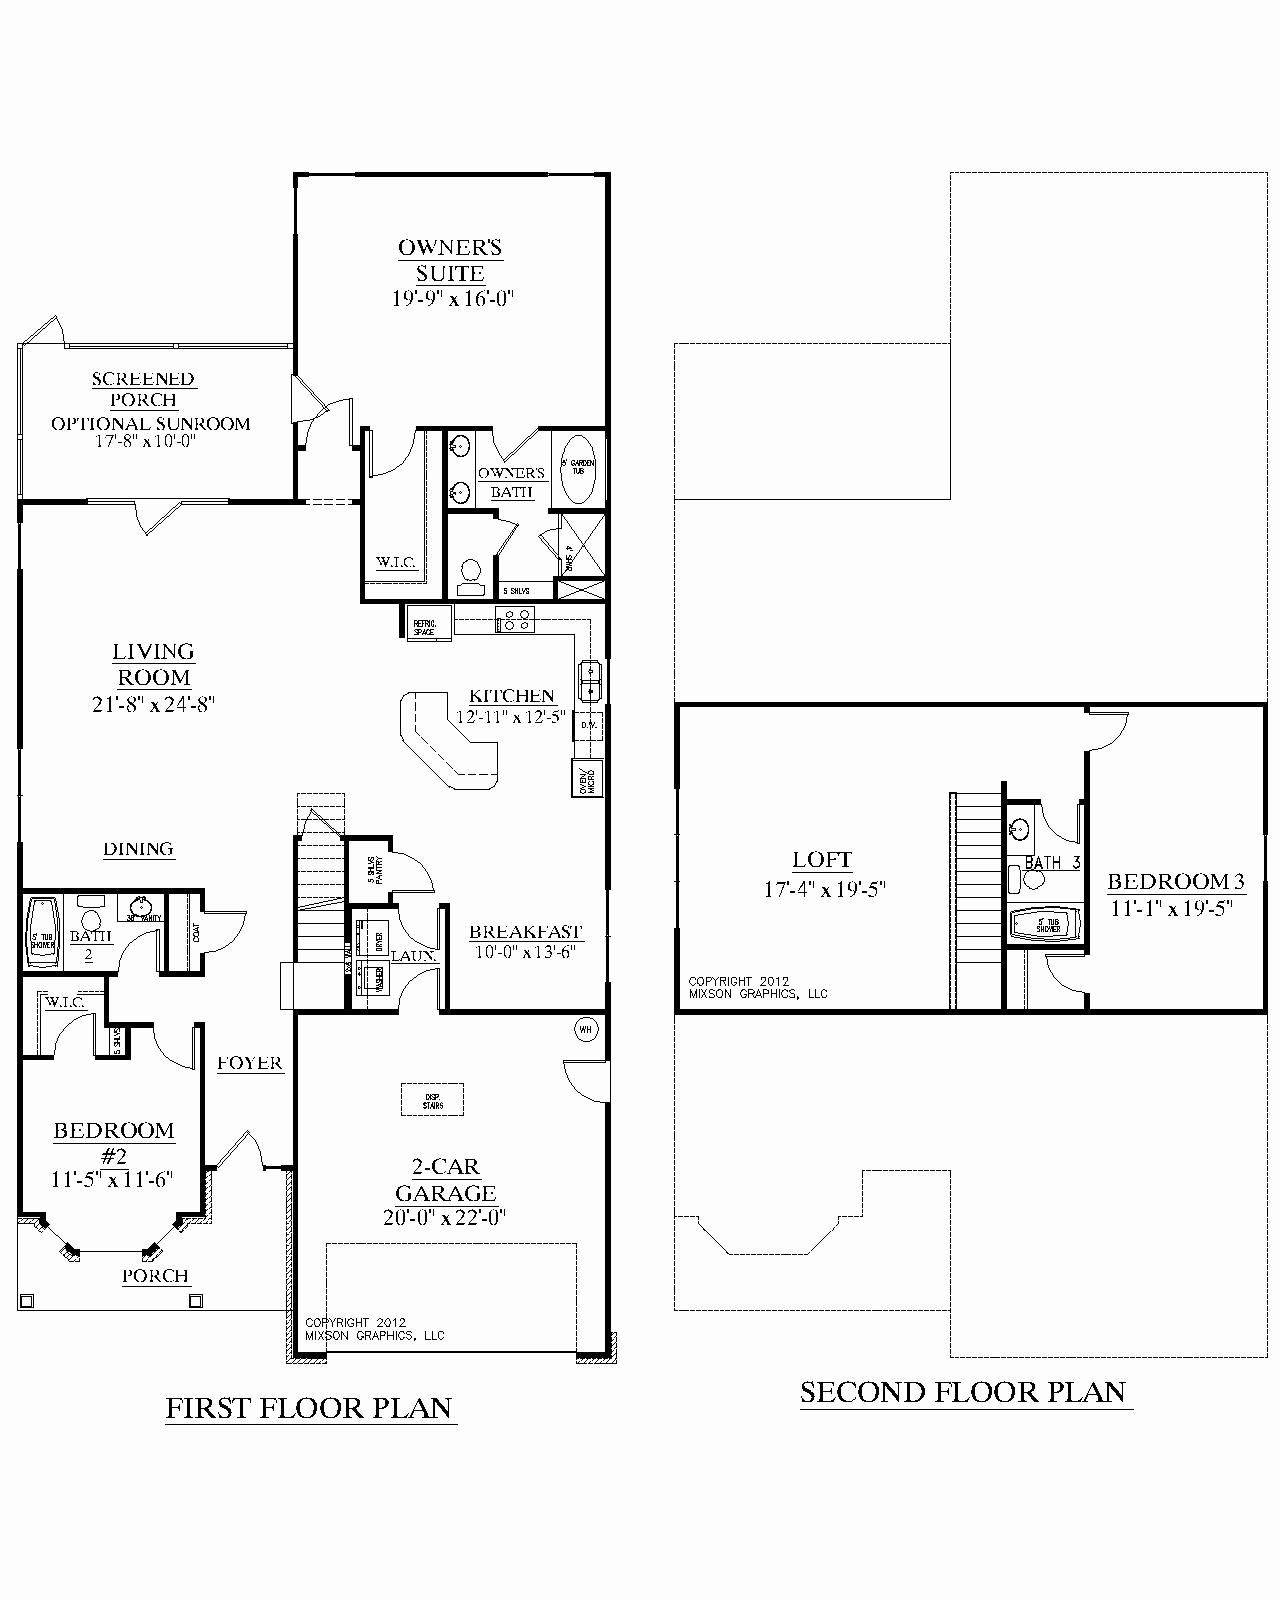 2 Bedroom Upstairs House Plans Awesome Master Suite And Second Bedroom Downstairs With Huge Lof In 2020 Two Story House Plans Beautiful House Plans Bedroom House Plans